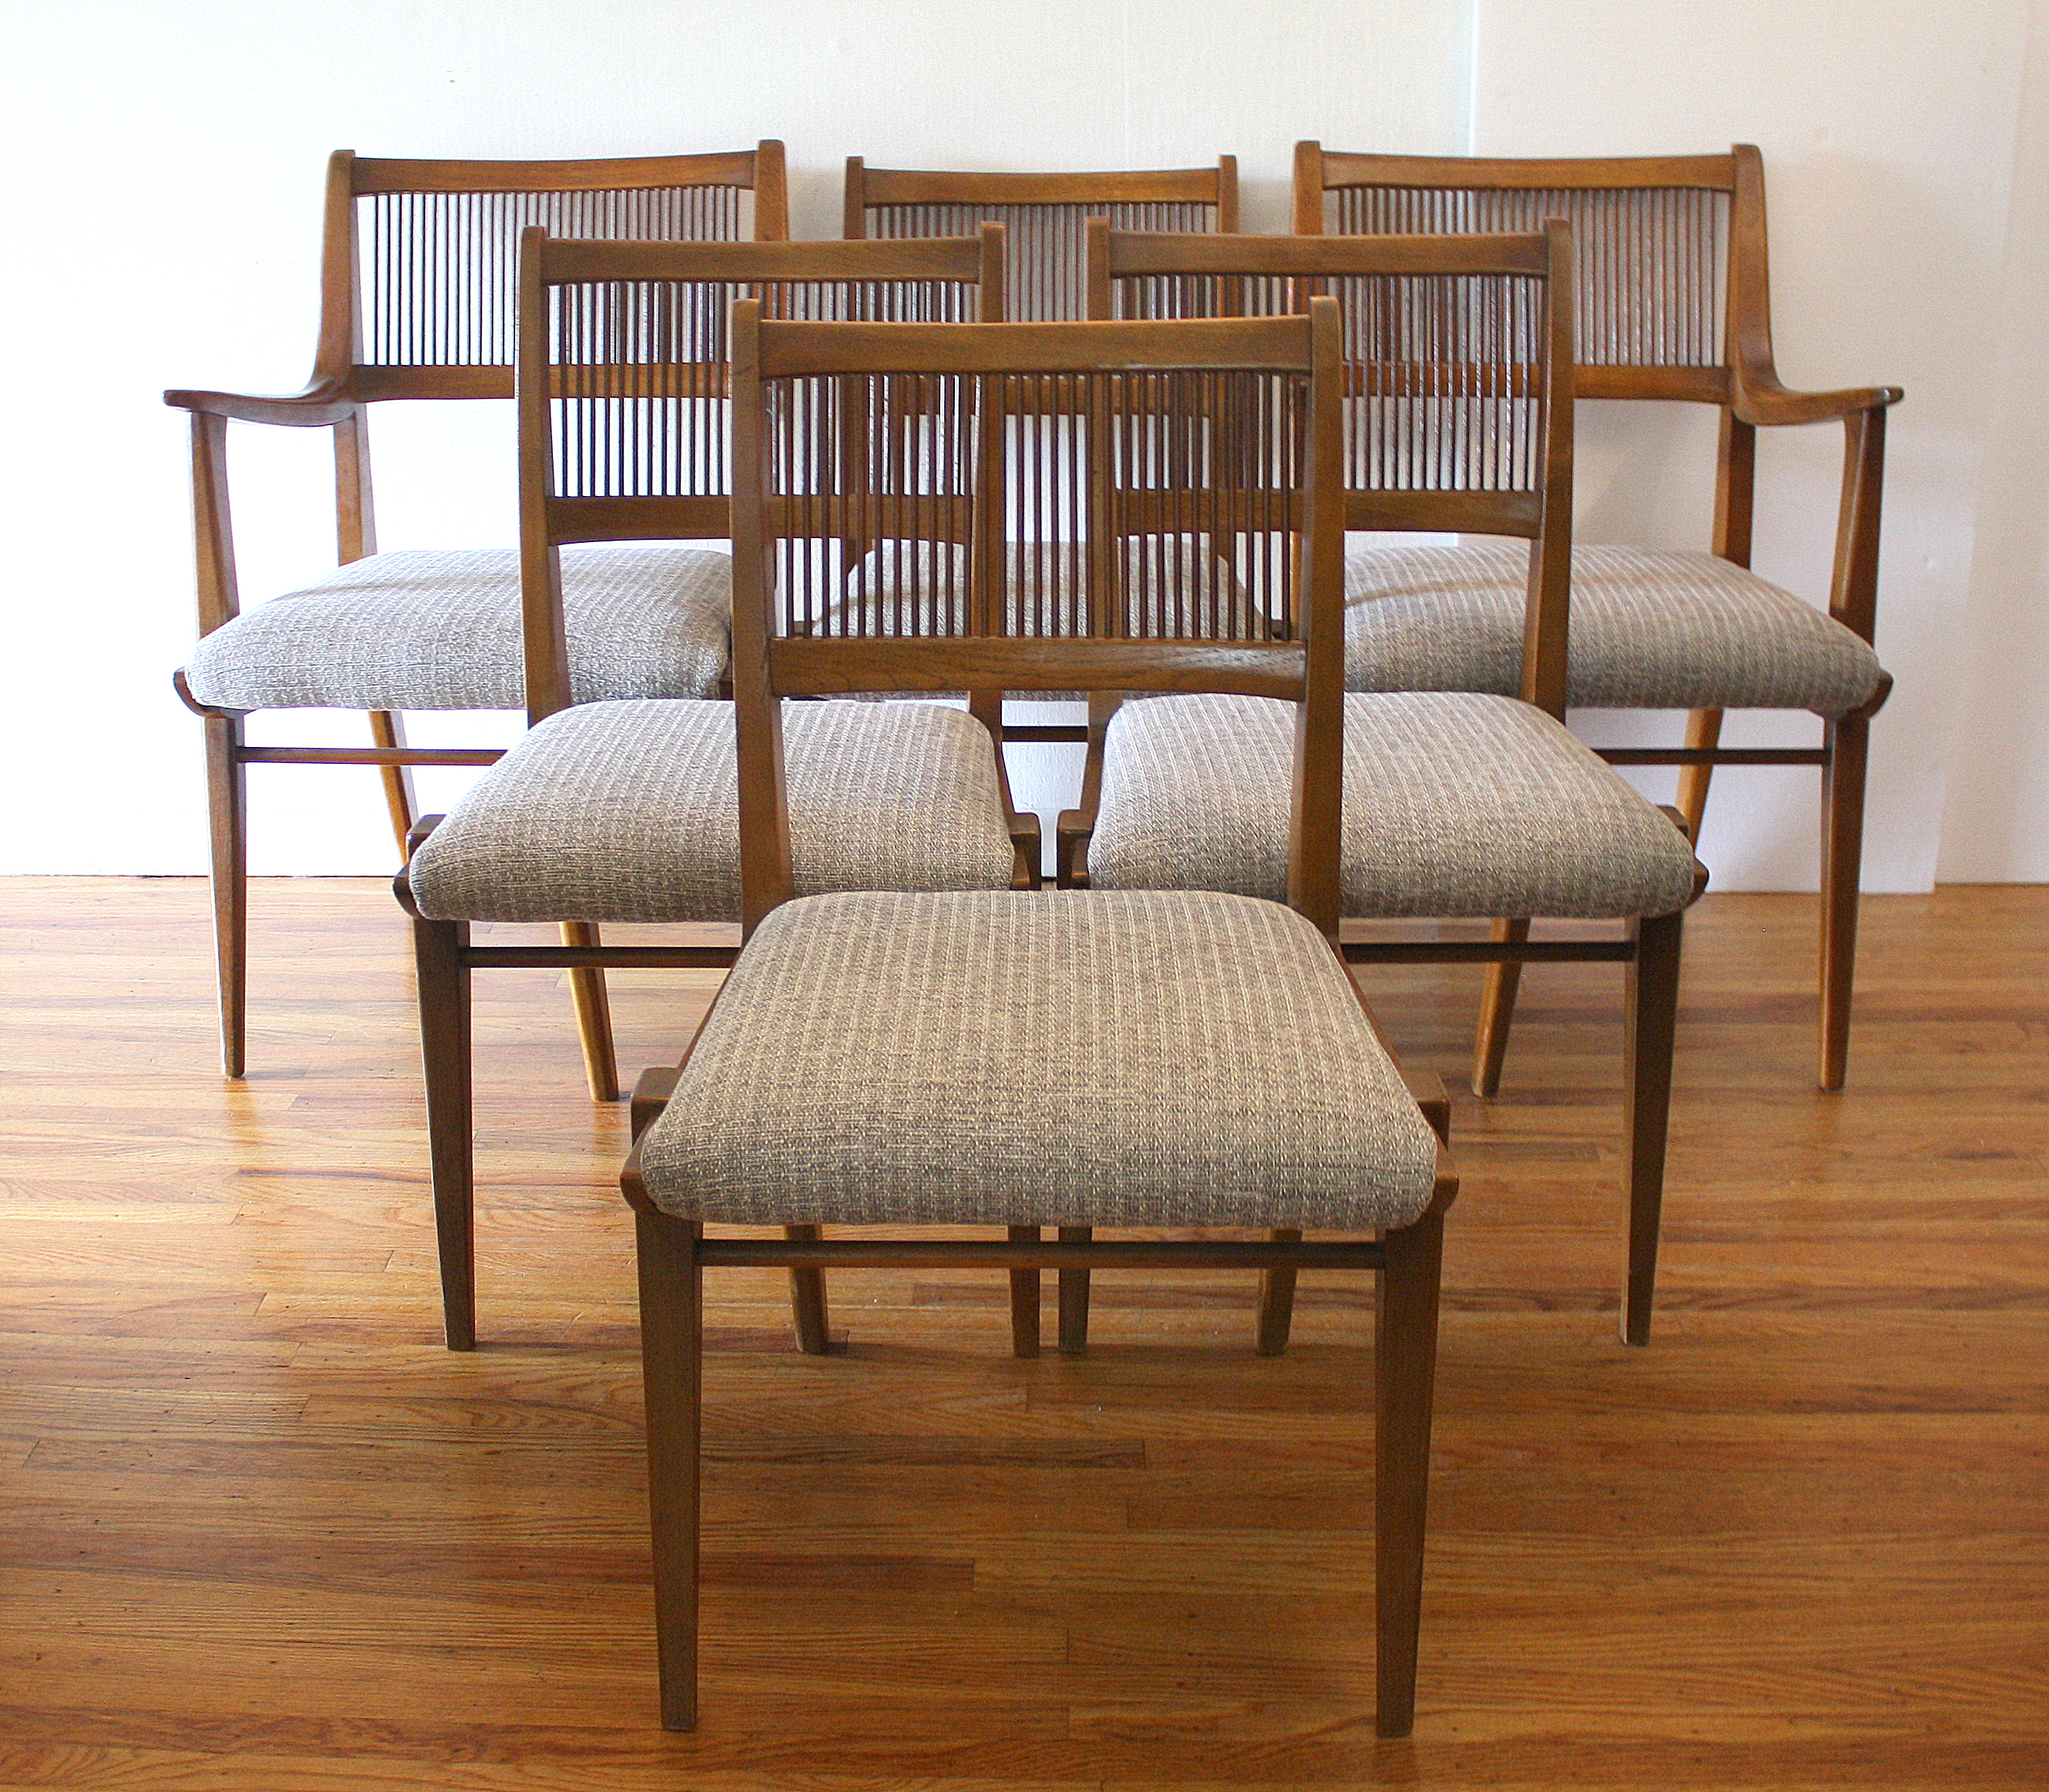 Drexel chairs 1.JPG